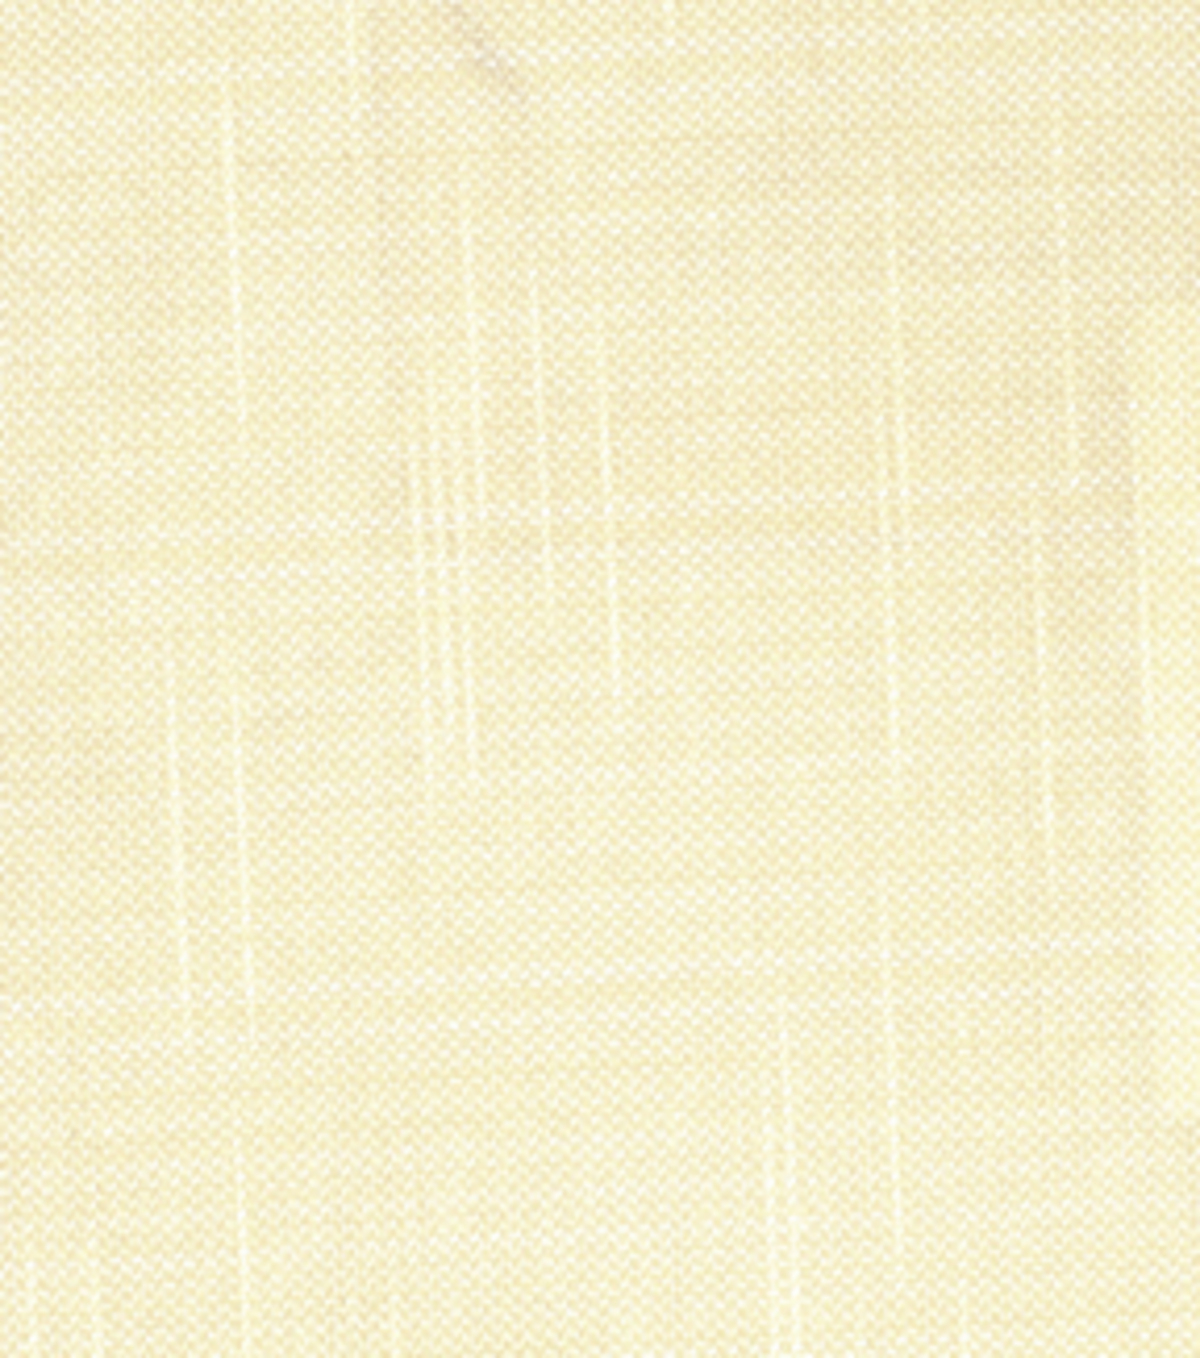 Home Decor 8\u0022x8\u0022 Fabric Swatch-Eaton Square Abner /  Cream